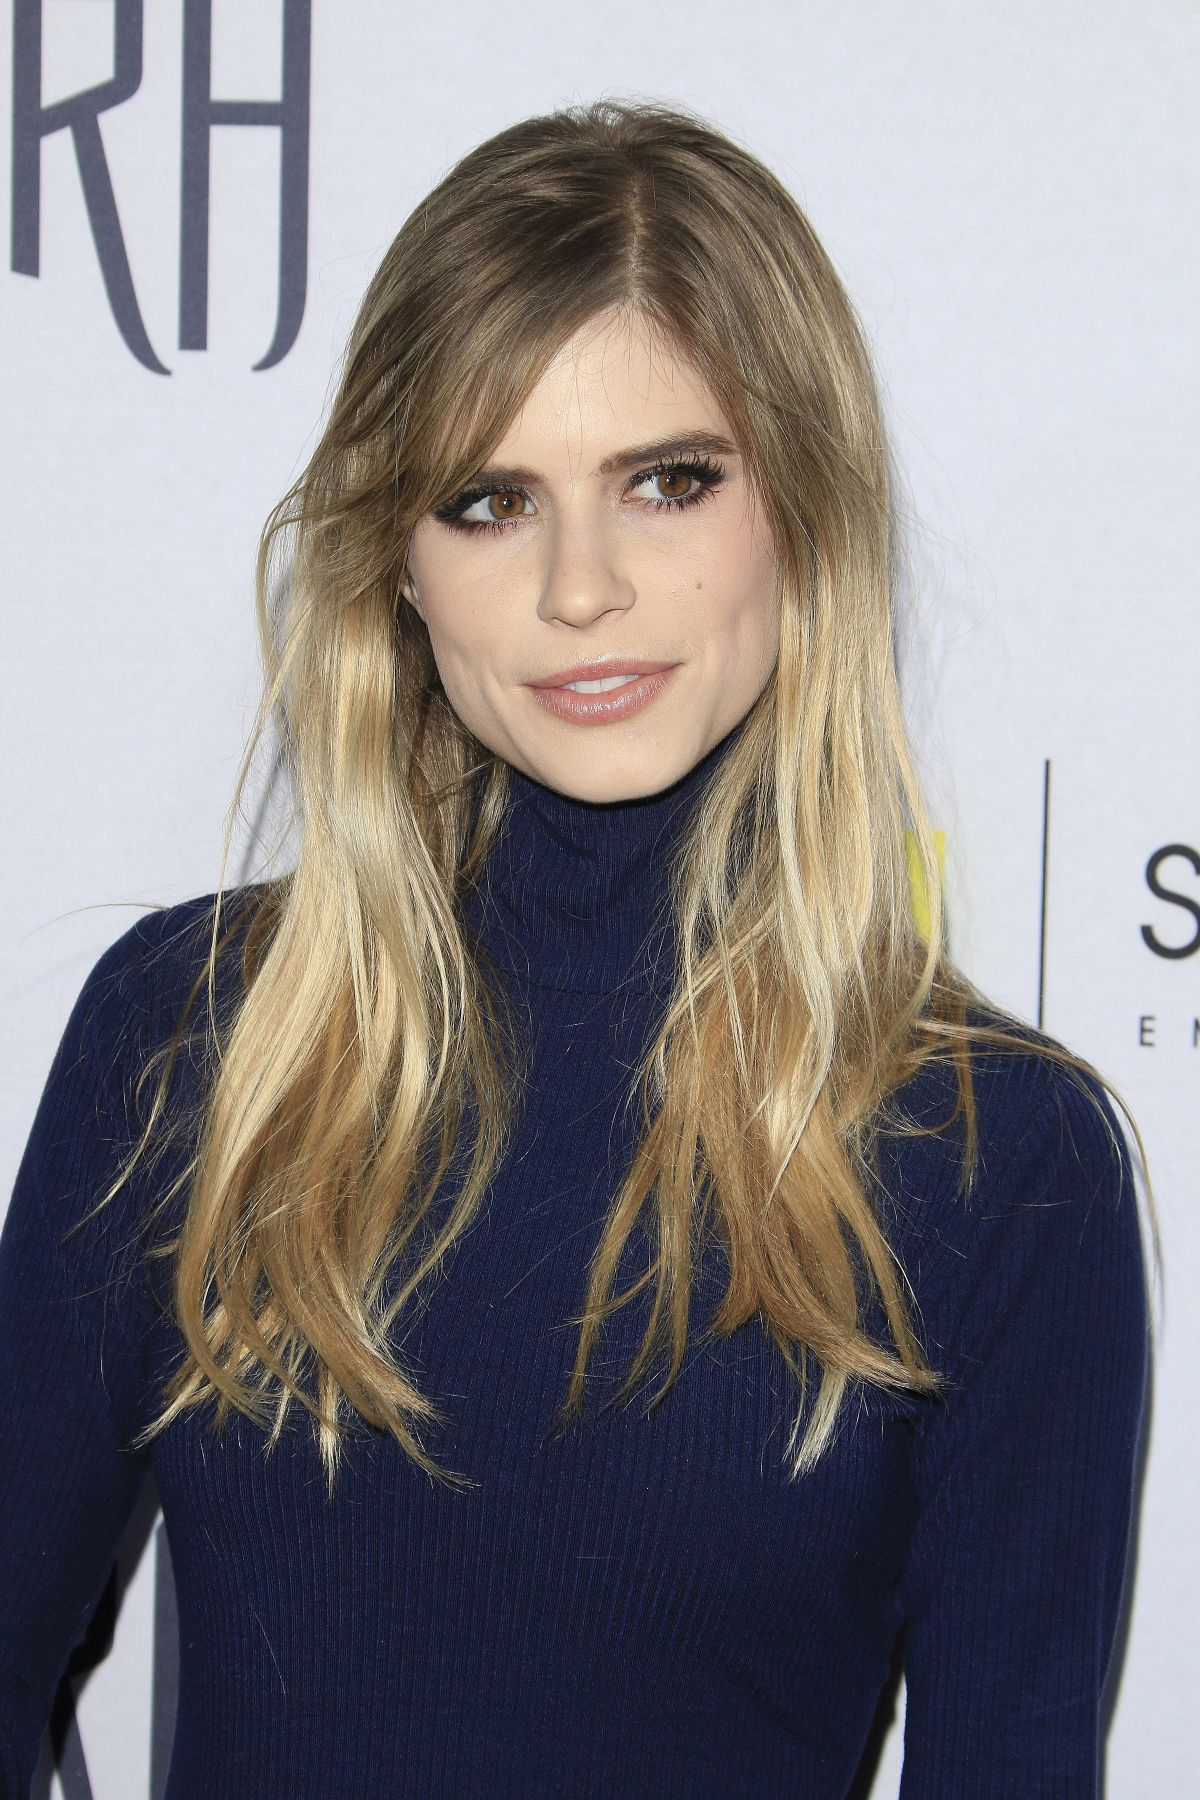 carlson young filmscarlson young gif, carlson young icons, carlson young pretty little liars, carlson young site, carlson young gif icons, carlson young png, carlson young icons tumblr, carlson young listal, carlson young birthday, carlson young daily, carlson young reddit, carlson young imdb, carlson young films, carlson young pack, carlson young facebook, carlson young insta, carlson young instagram, carlson young fan site, carlson young twitter pack, carlson young interview